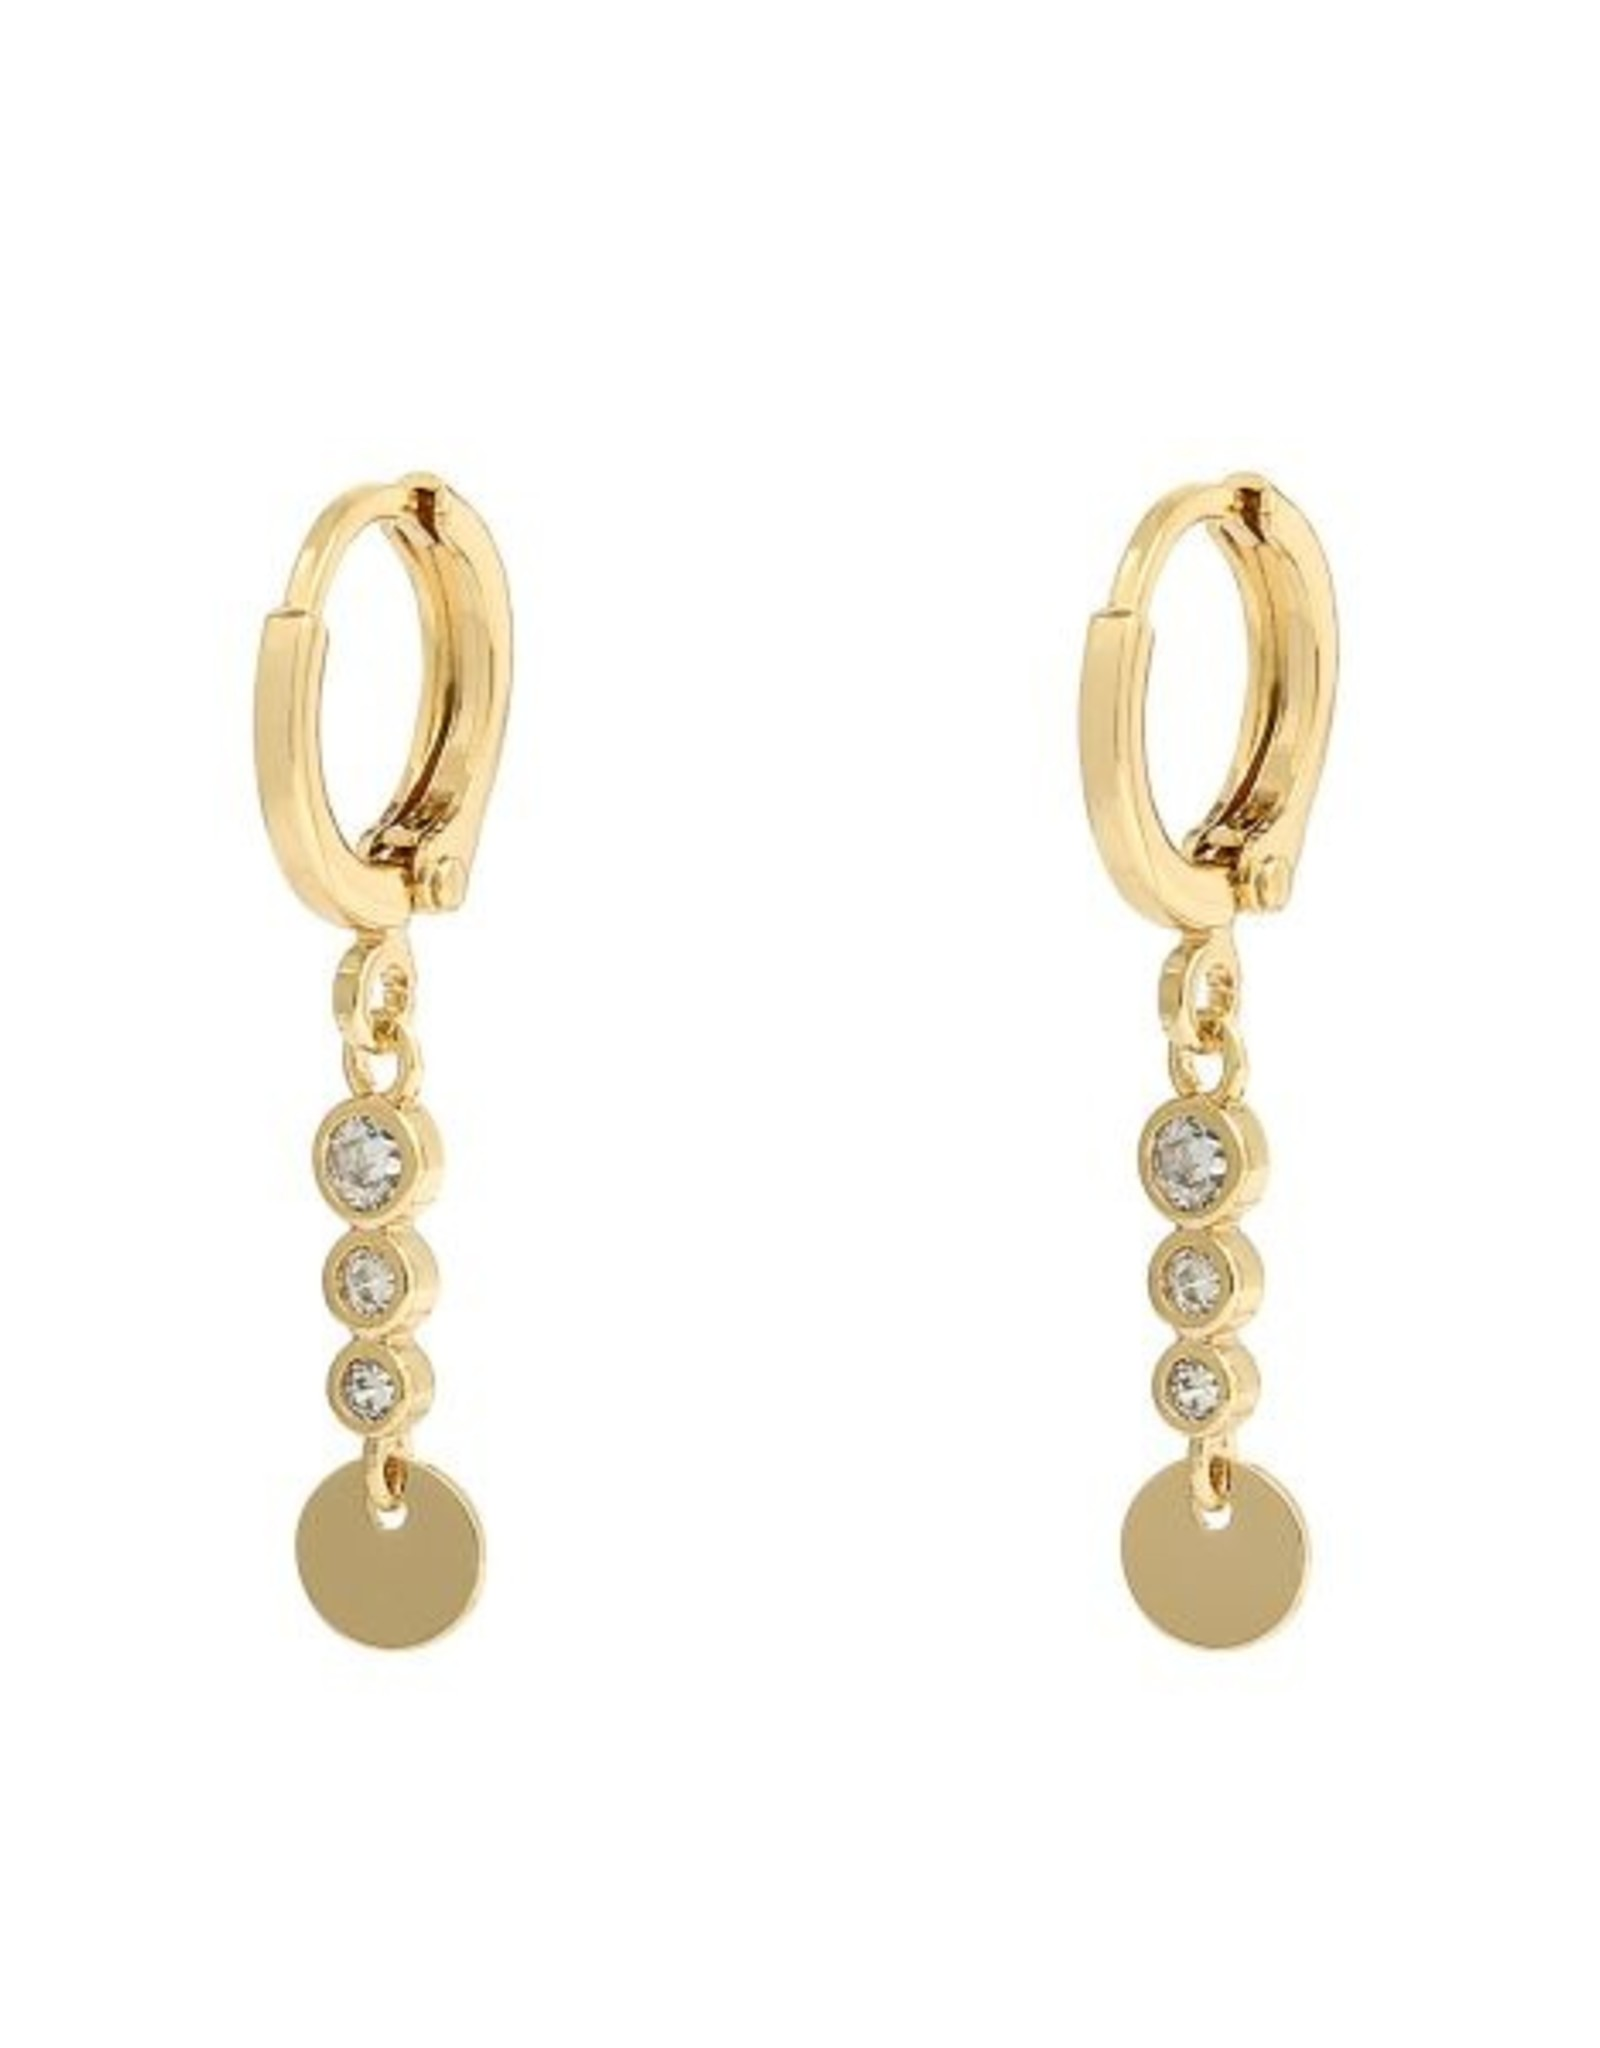 Earrings sparkle and circle white stones